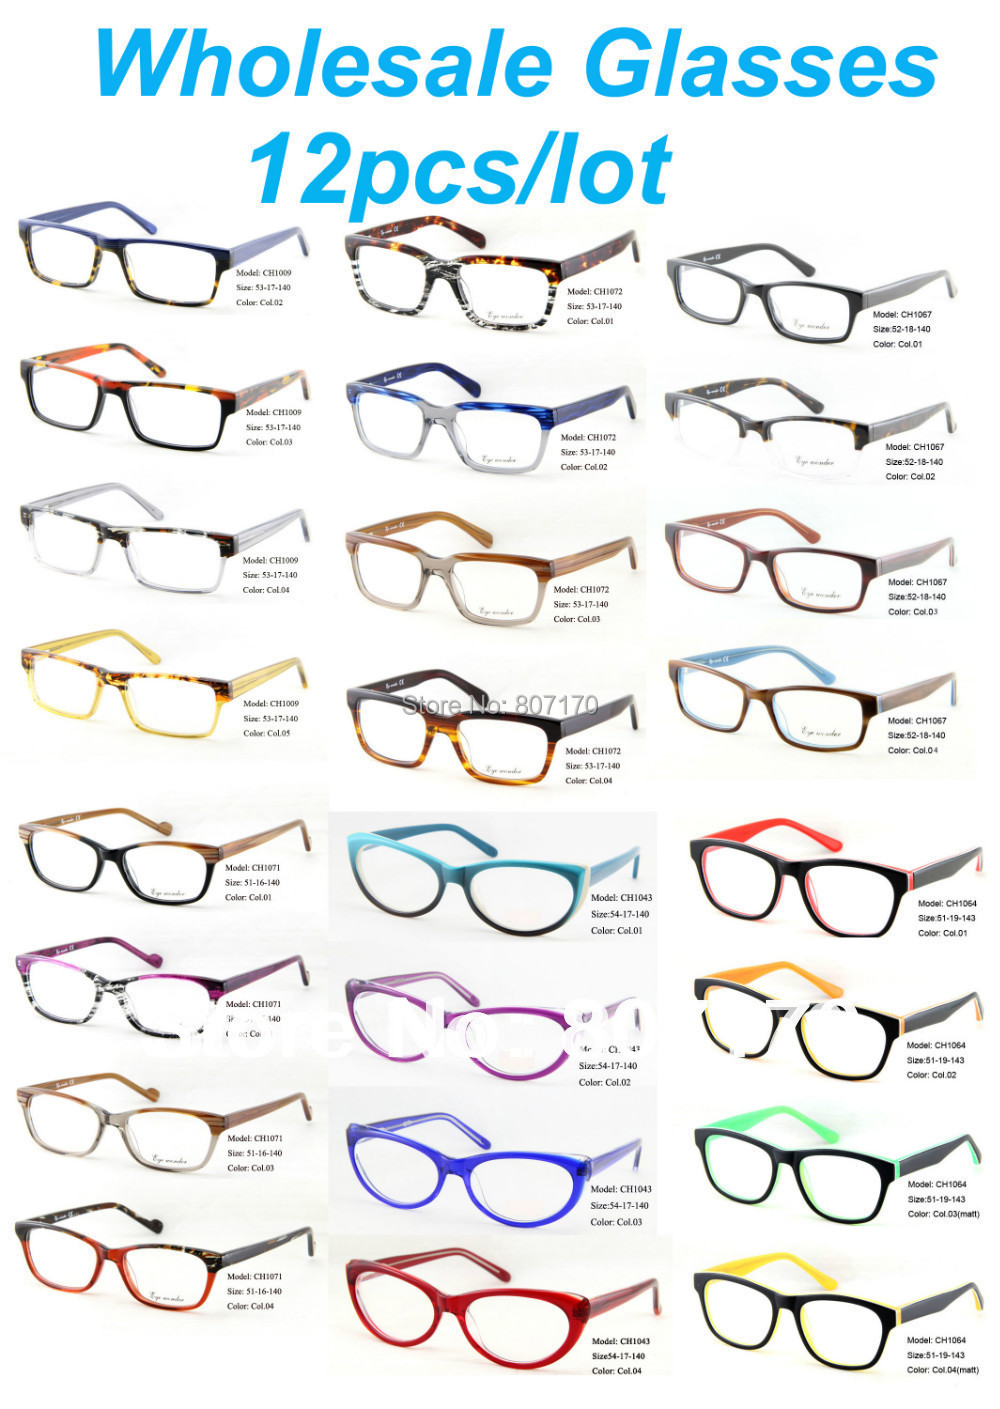 0ce36cf29c1b Free shipping 2012 New Arrival  Top brand acetate eyeglasses frames  Wholesale  optical frames 12pcs lot